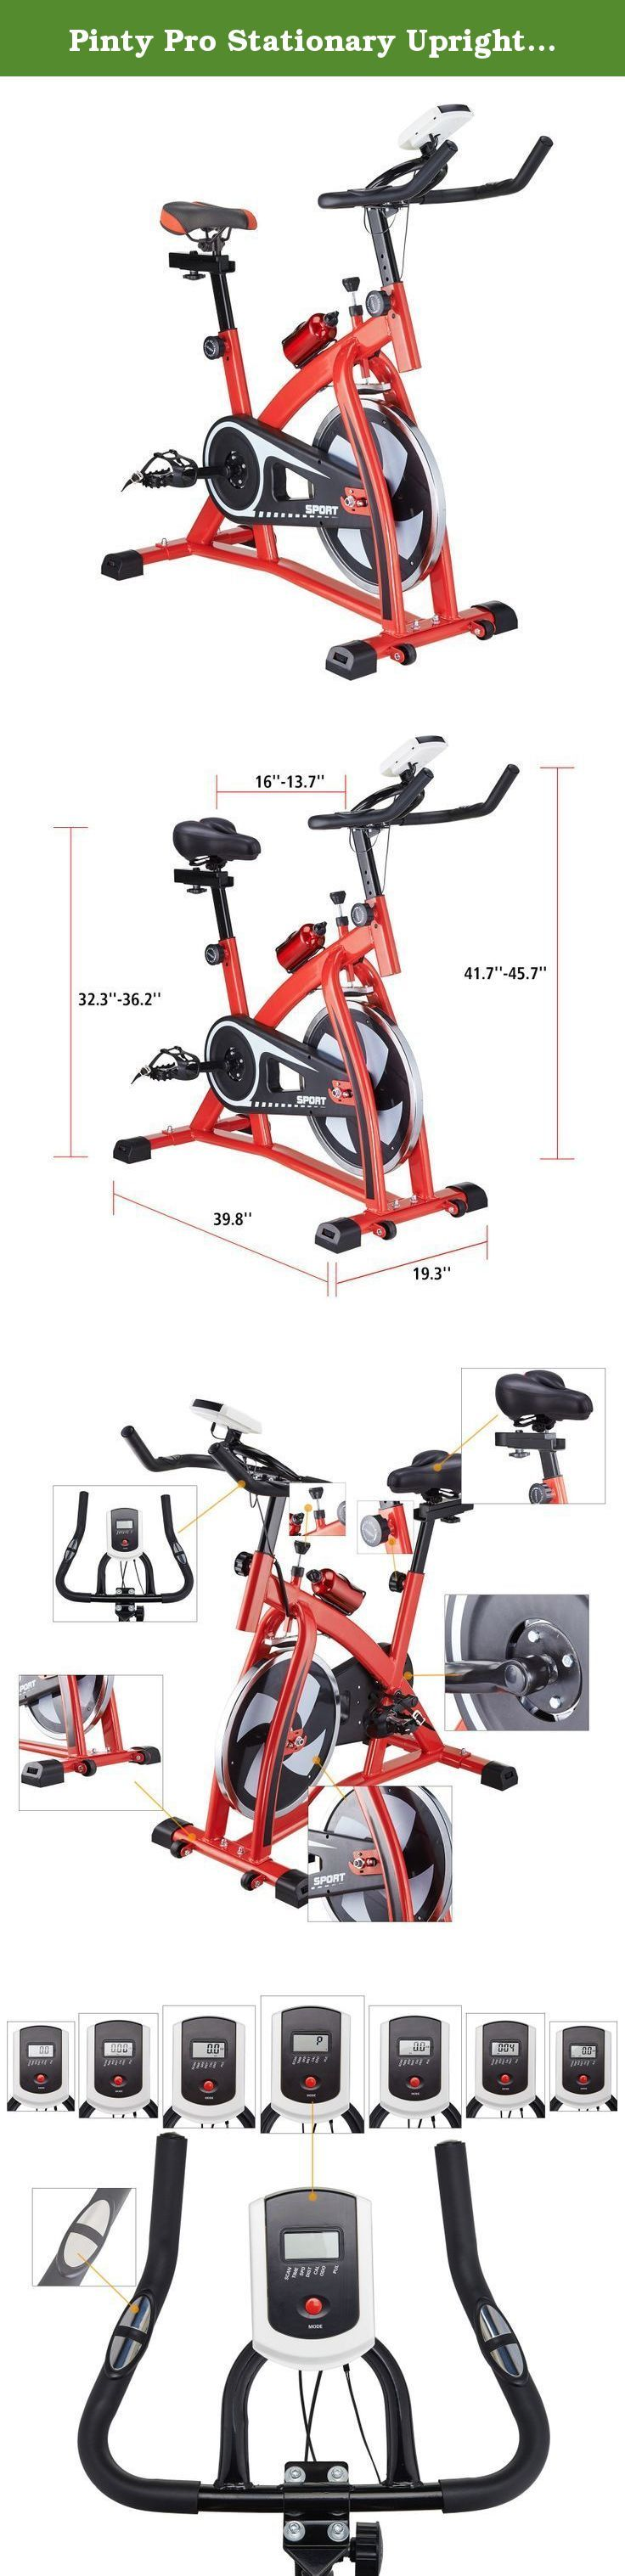 "Pinty Pro Stationary Upright Exercise Bike Indoor Cycling Gym Cardio Trainer with LCD Monitor & Water Bottle (Red). Honestly, the review we received all complain about the size of our stationary bike. We feel terrible sorry for the size problem, please notice, the bike is not suitable for the person who taller than 5.6"". Any after-sales problem please contact us, would like to help you solve the problem! Thank you so much for your understanding! Description: Thanks to its intelligent and..."